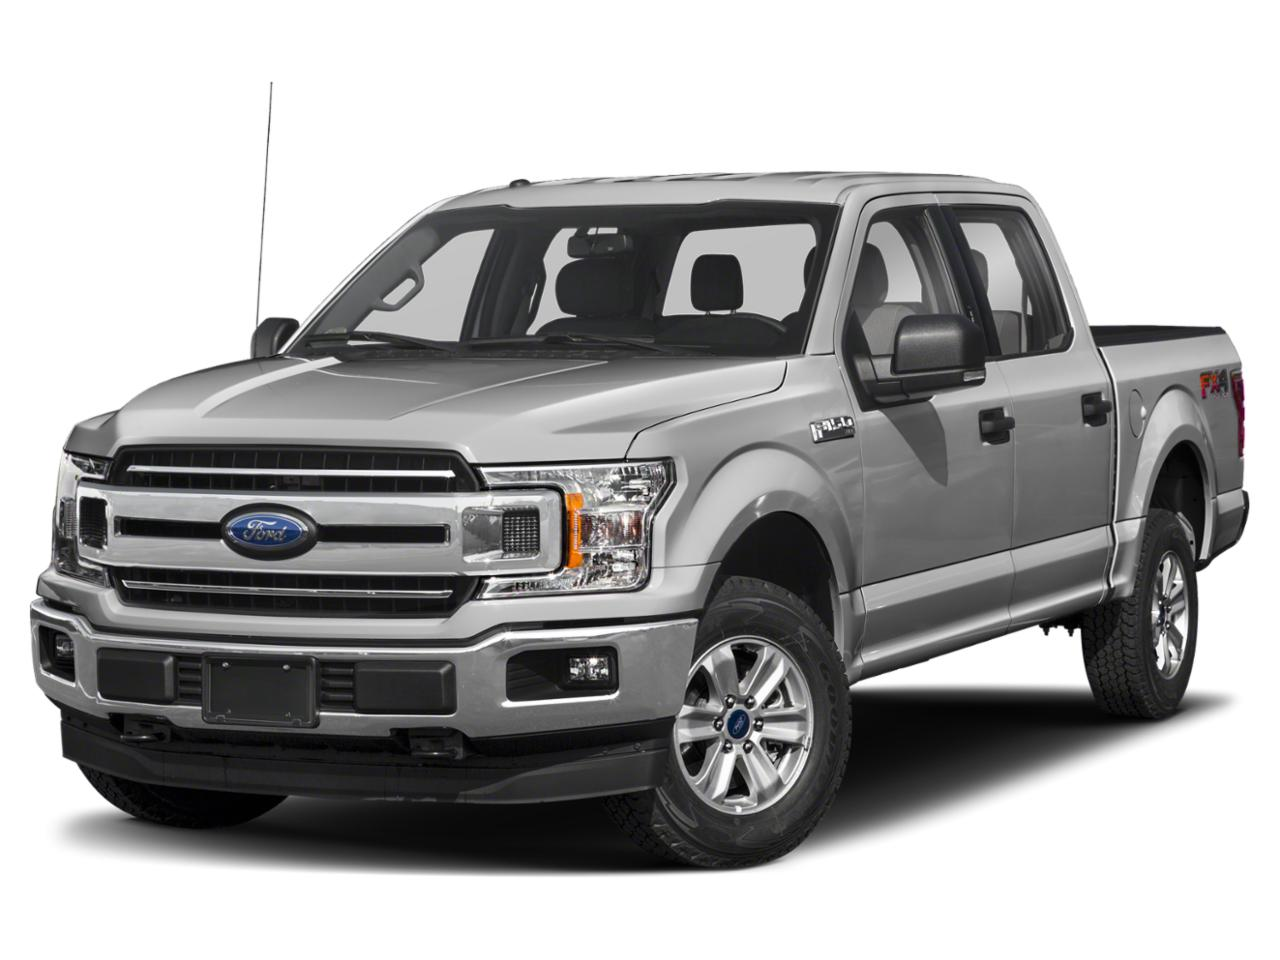 2018 Ford F-150 Vehicle Photo in Quakertown, PA 18951-1403